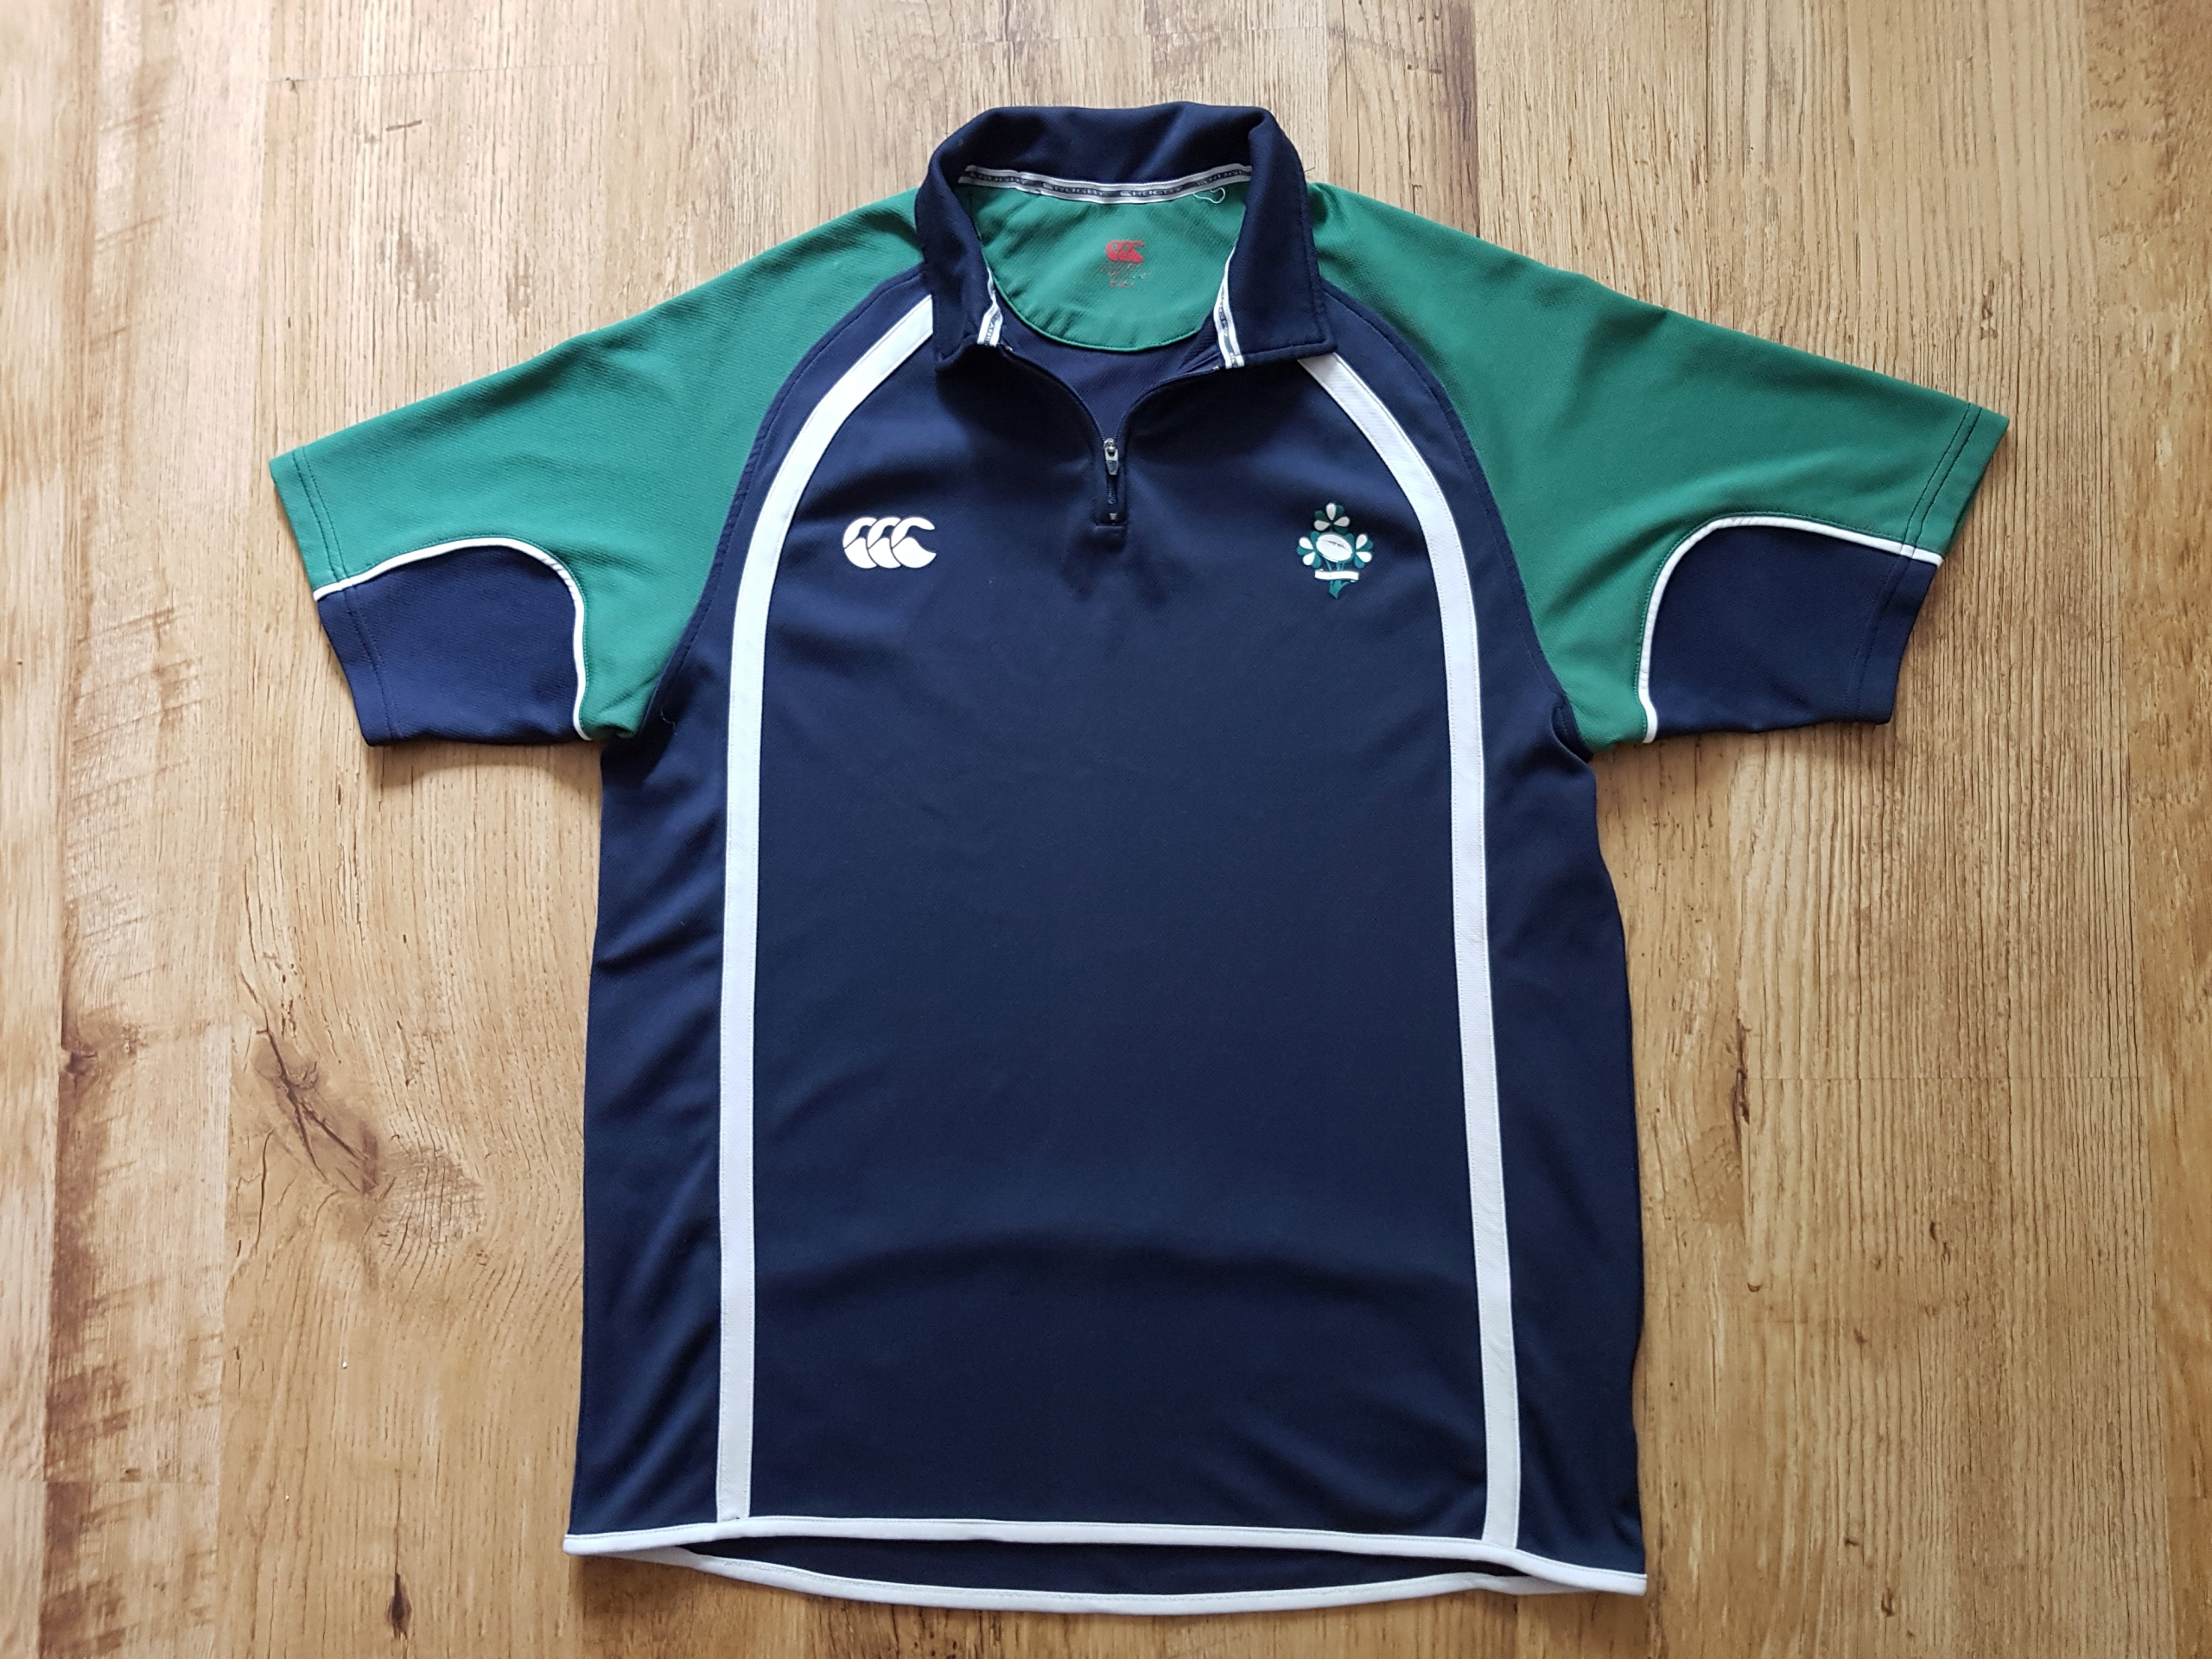 CANTERBURY IRELAND__KOSZULKA T-SHIRT DO RUGBY L